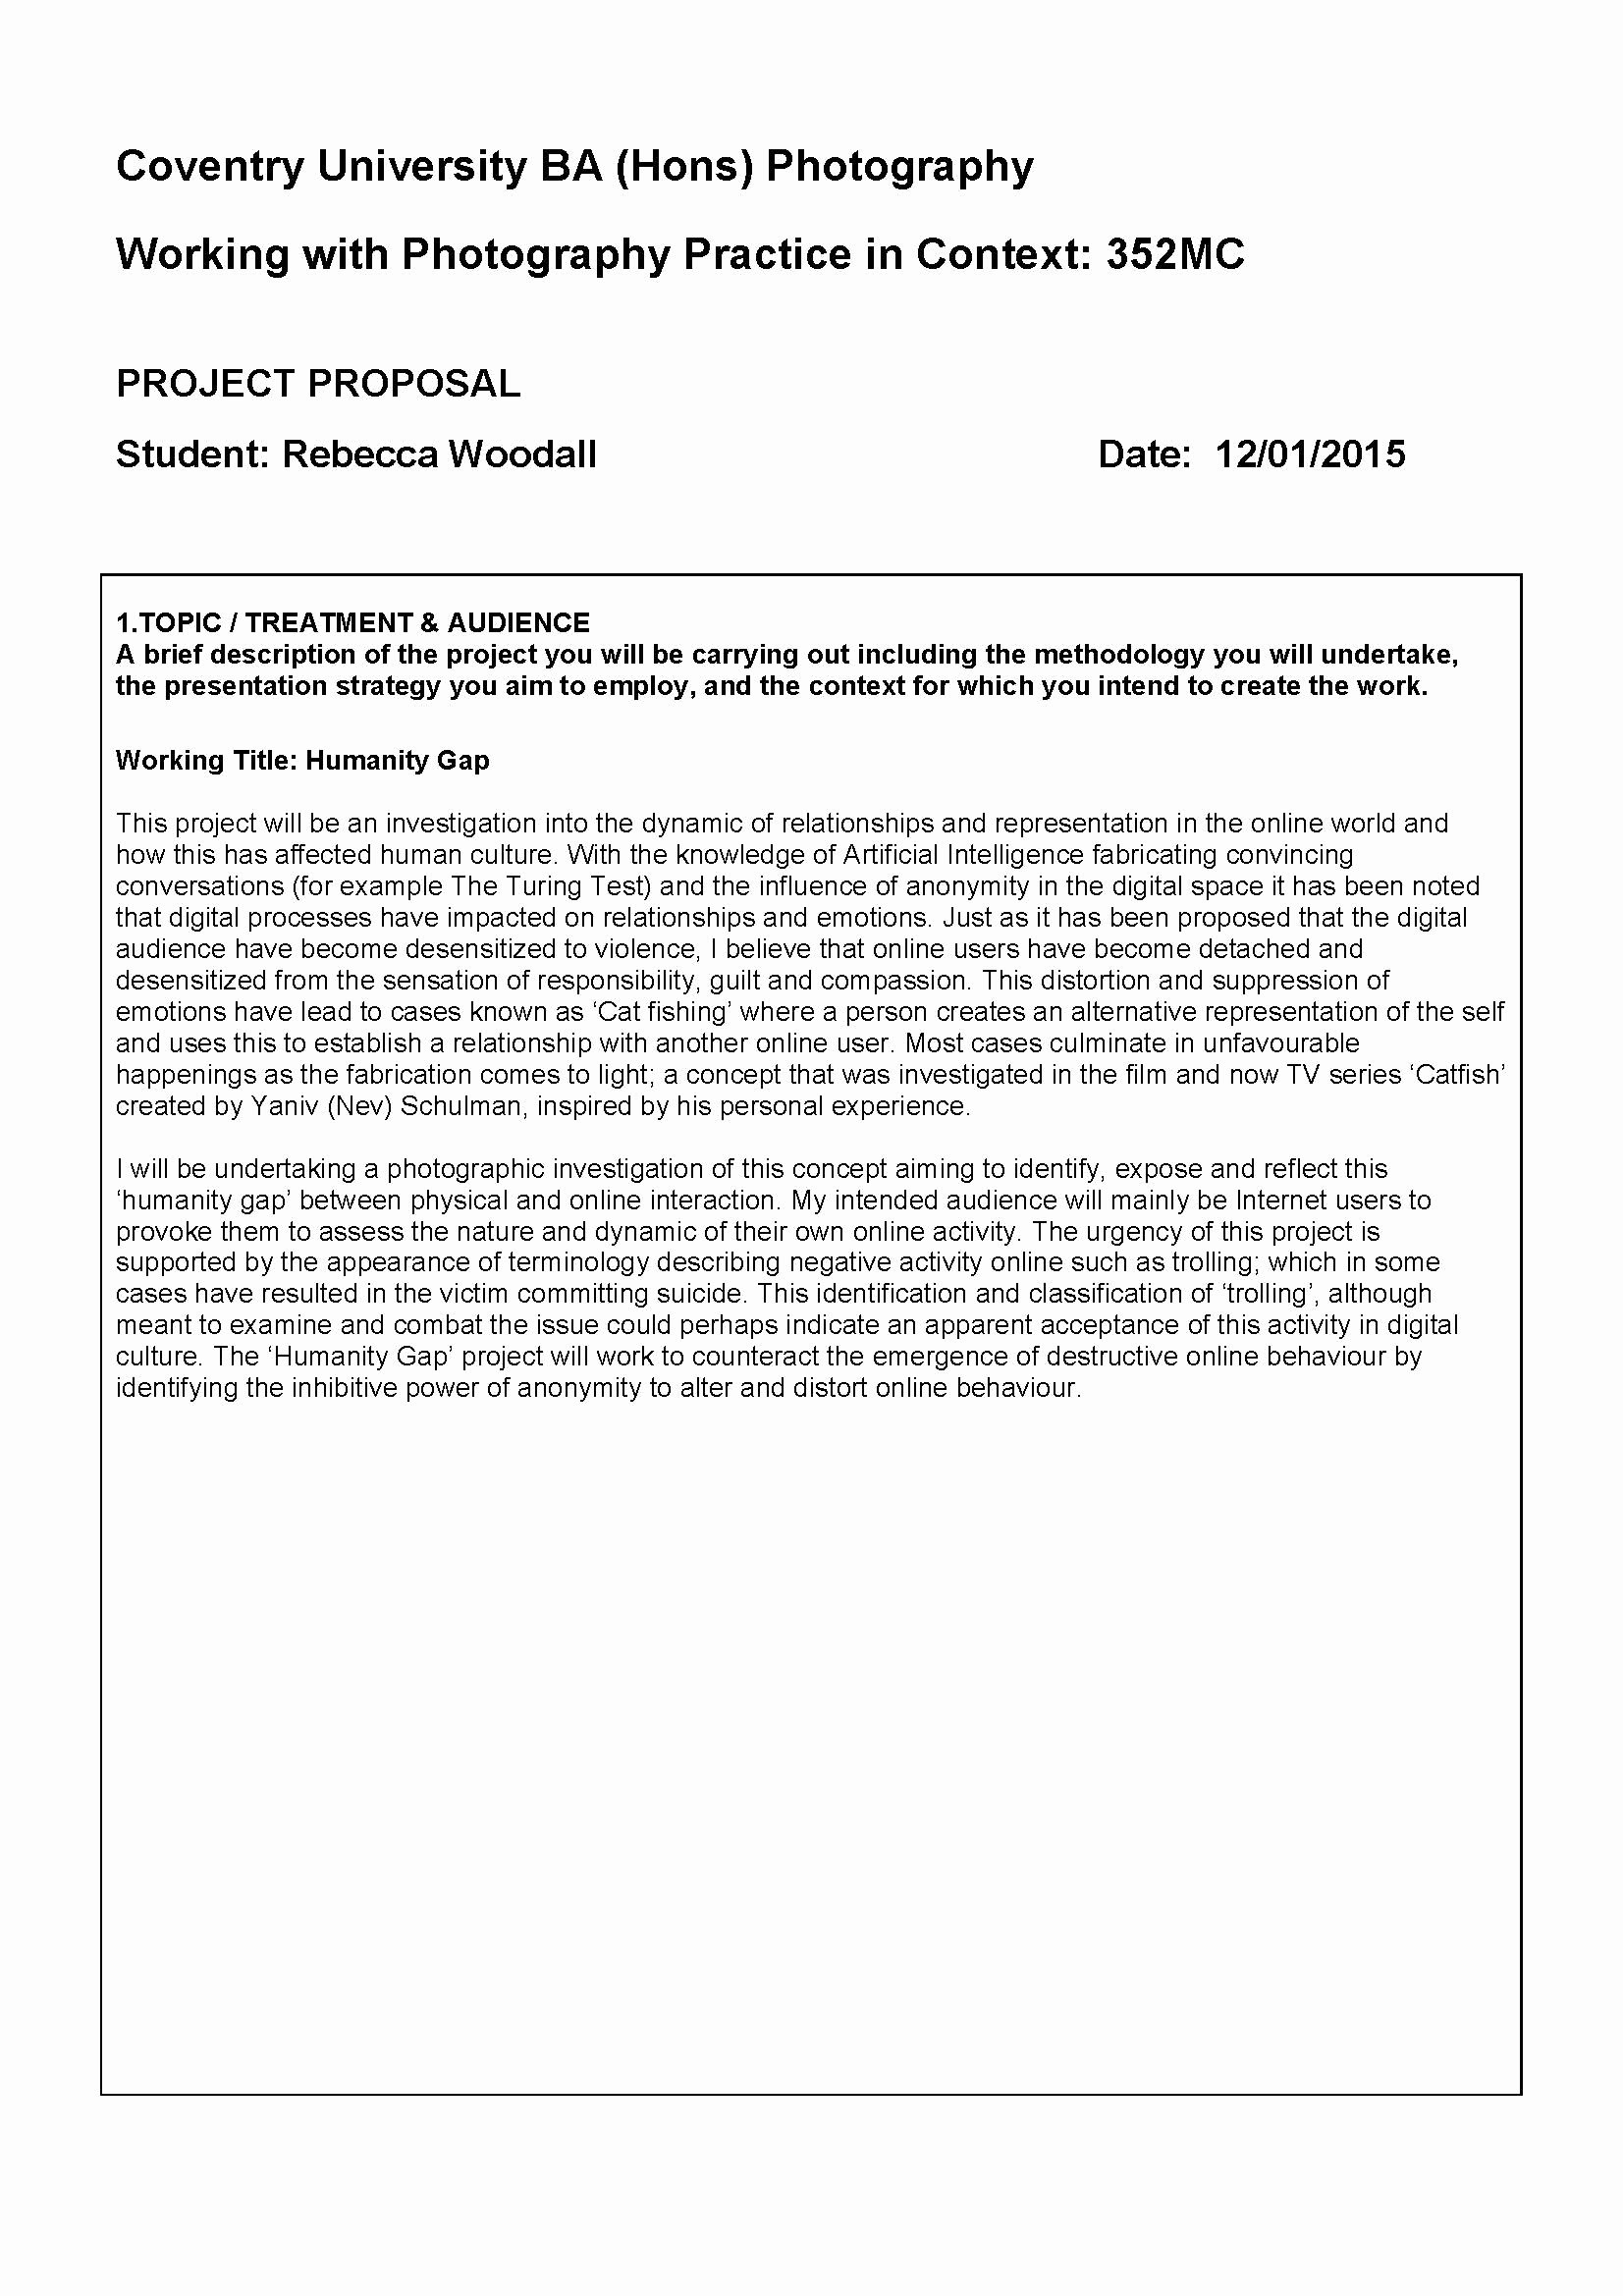 One Page Project Proposal Template Unique Introduction and Initial Proposal – Rebecca Woodall